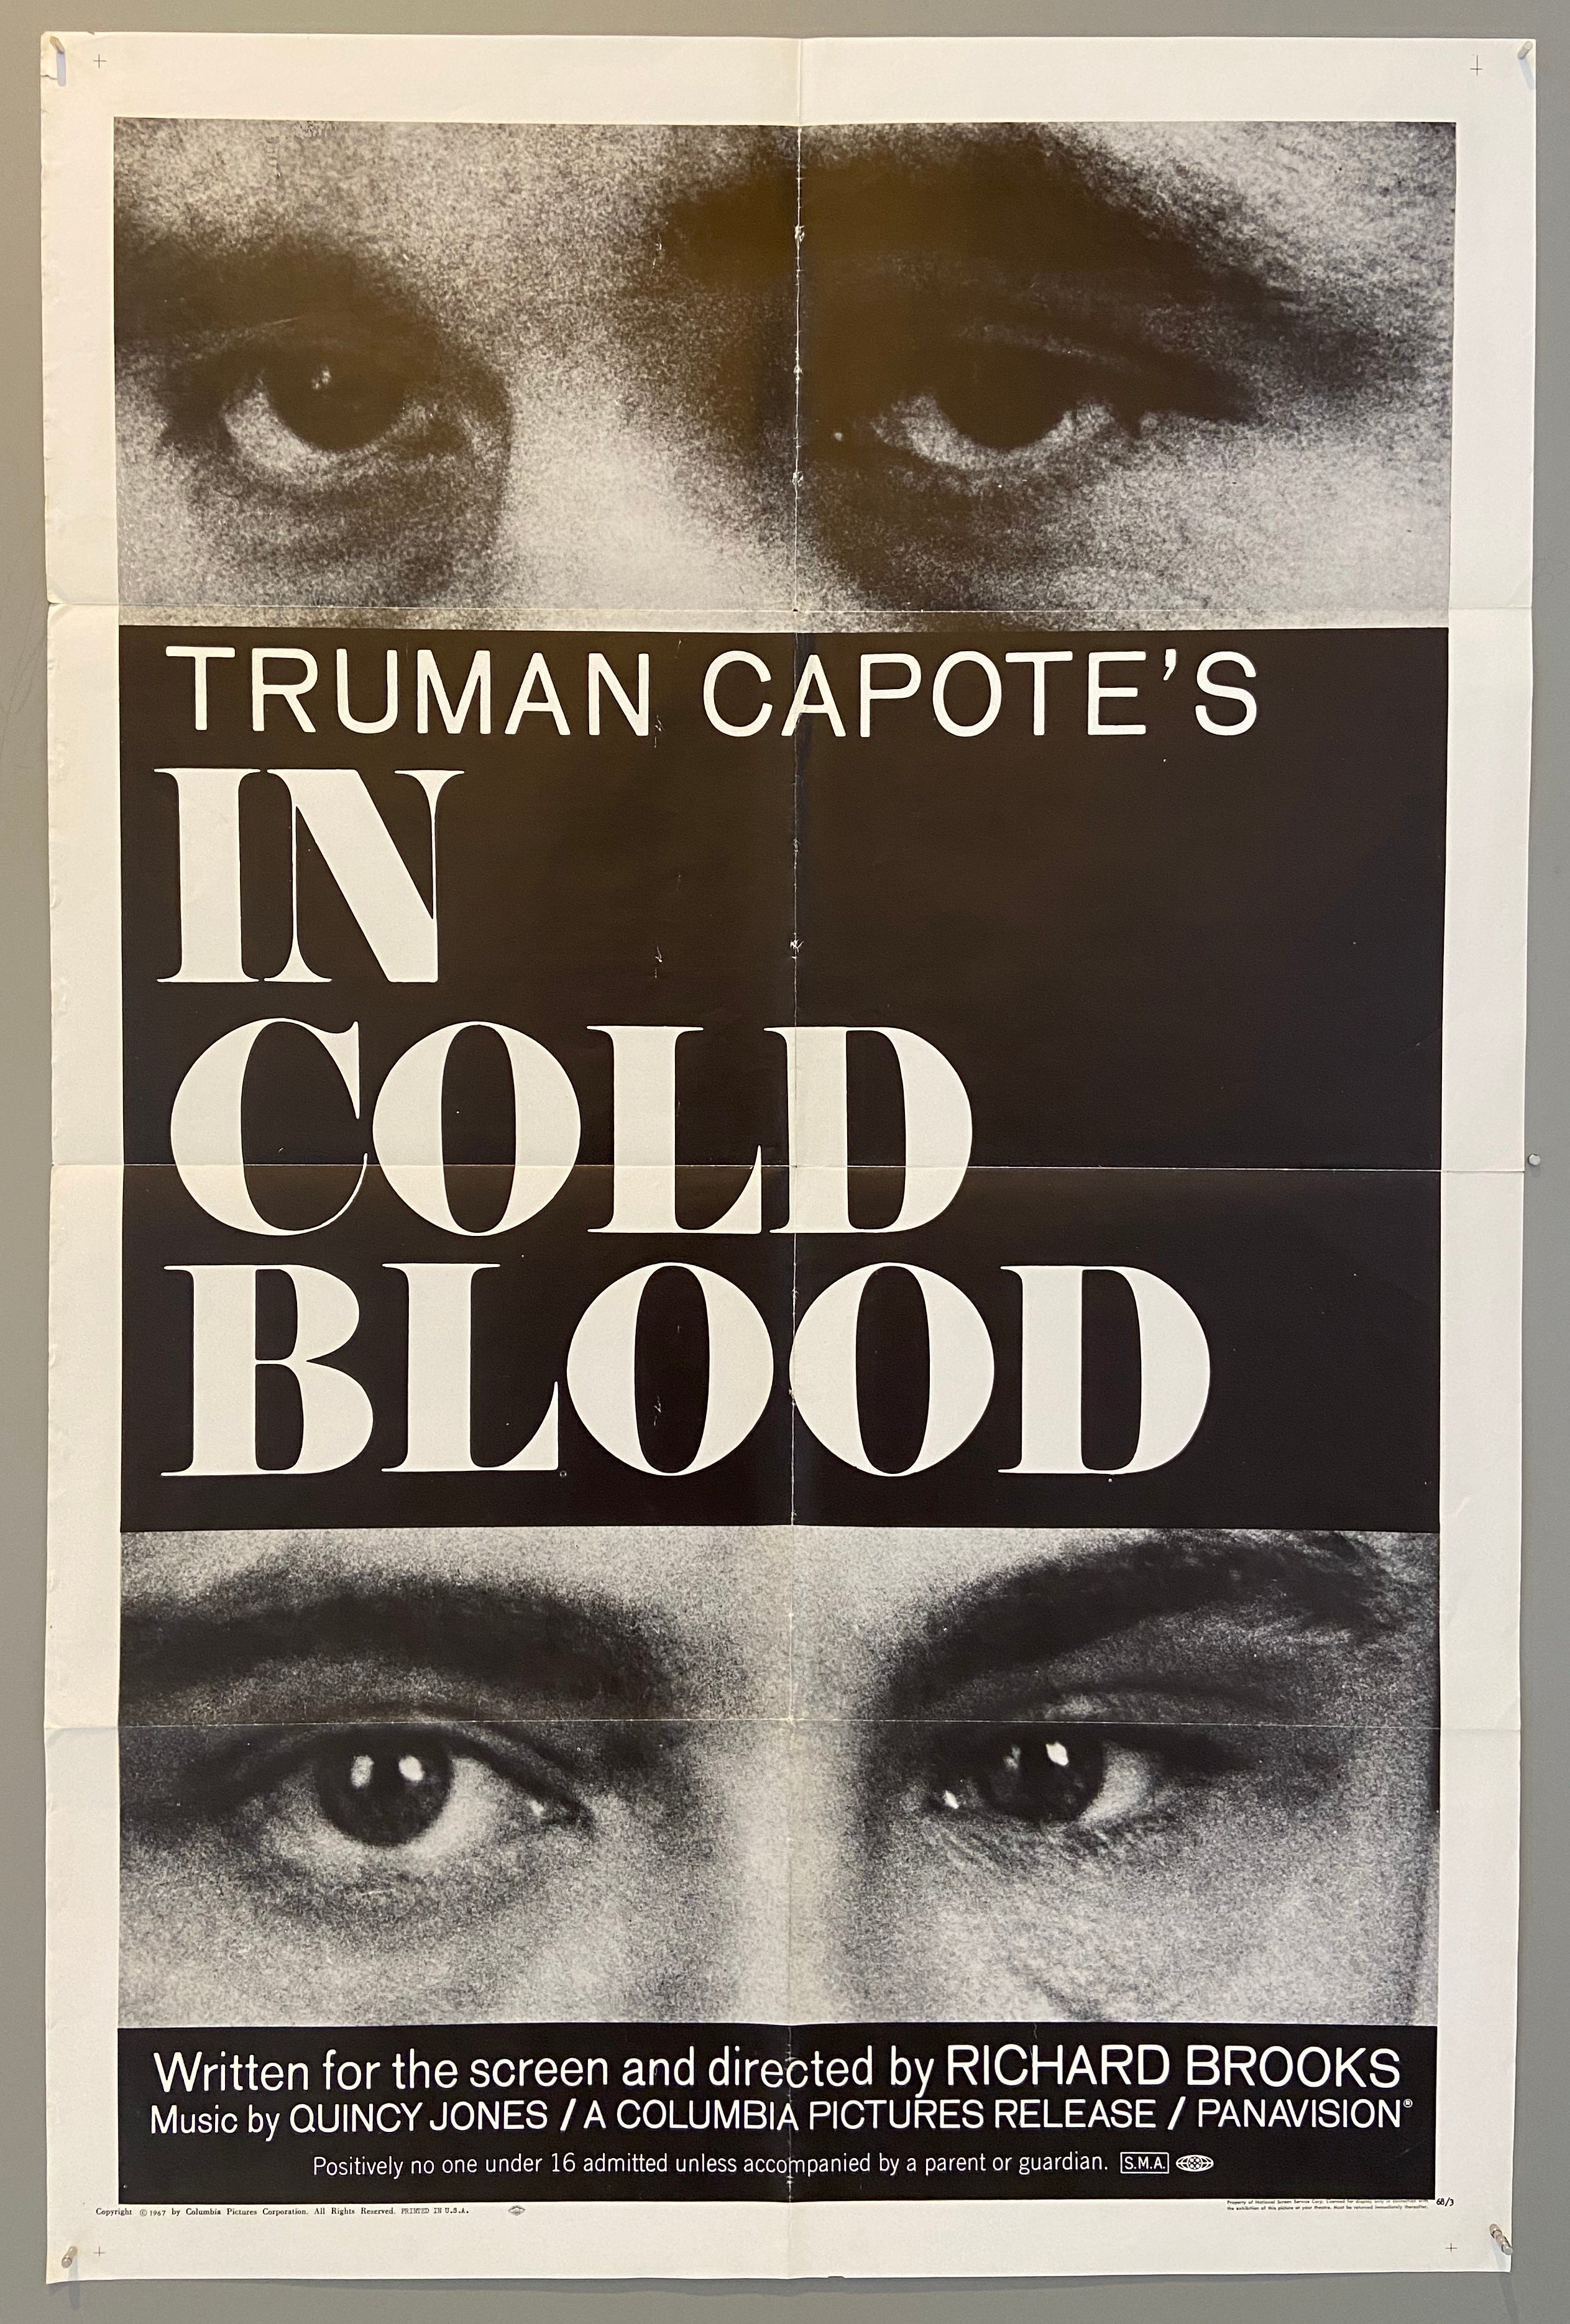 Truman Capote's In Cold Blood – Poster Museum